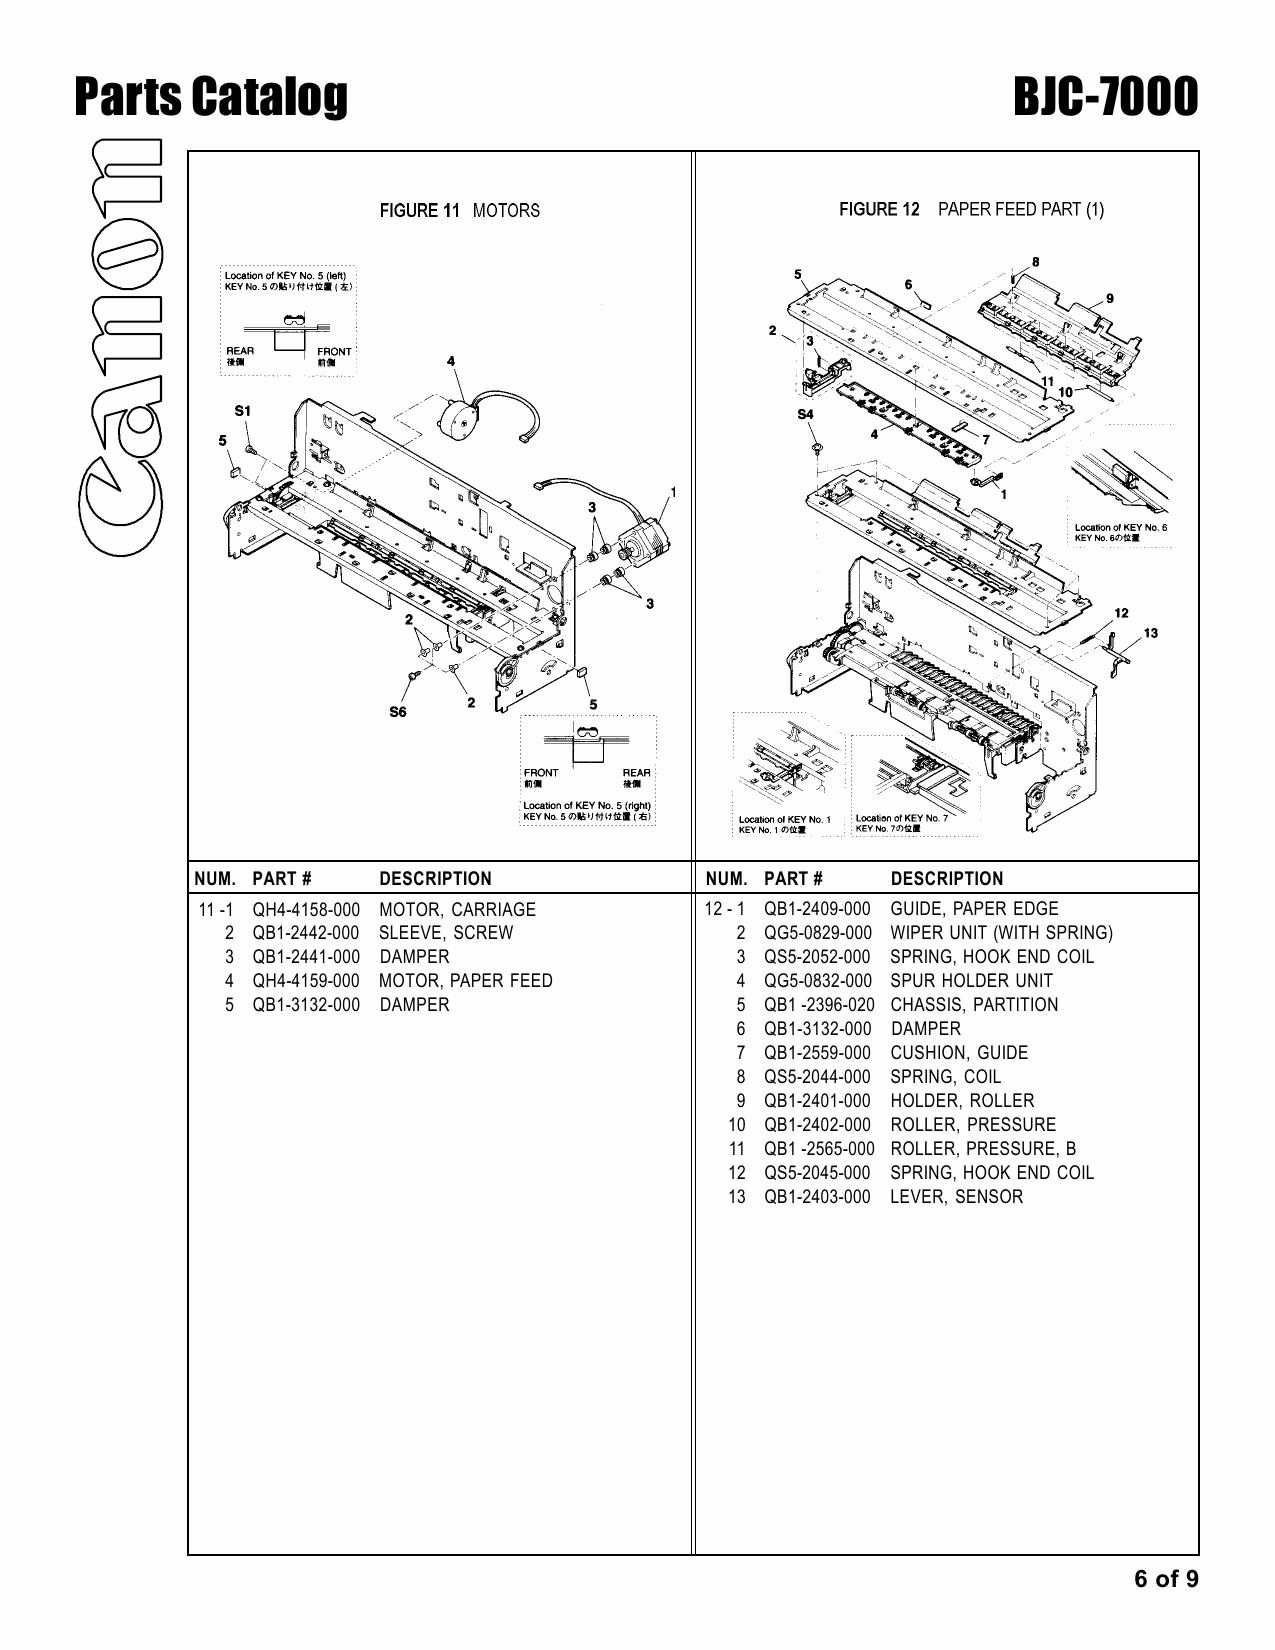 Canon BubbleJet BJC-7000 Parts Catalog Manual-6